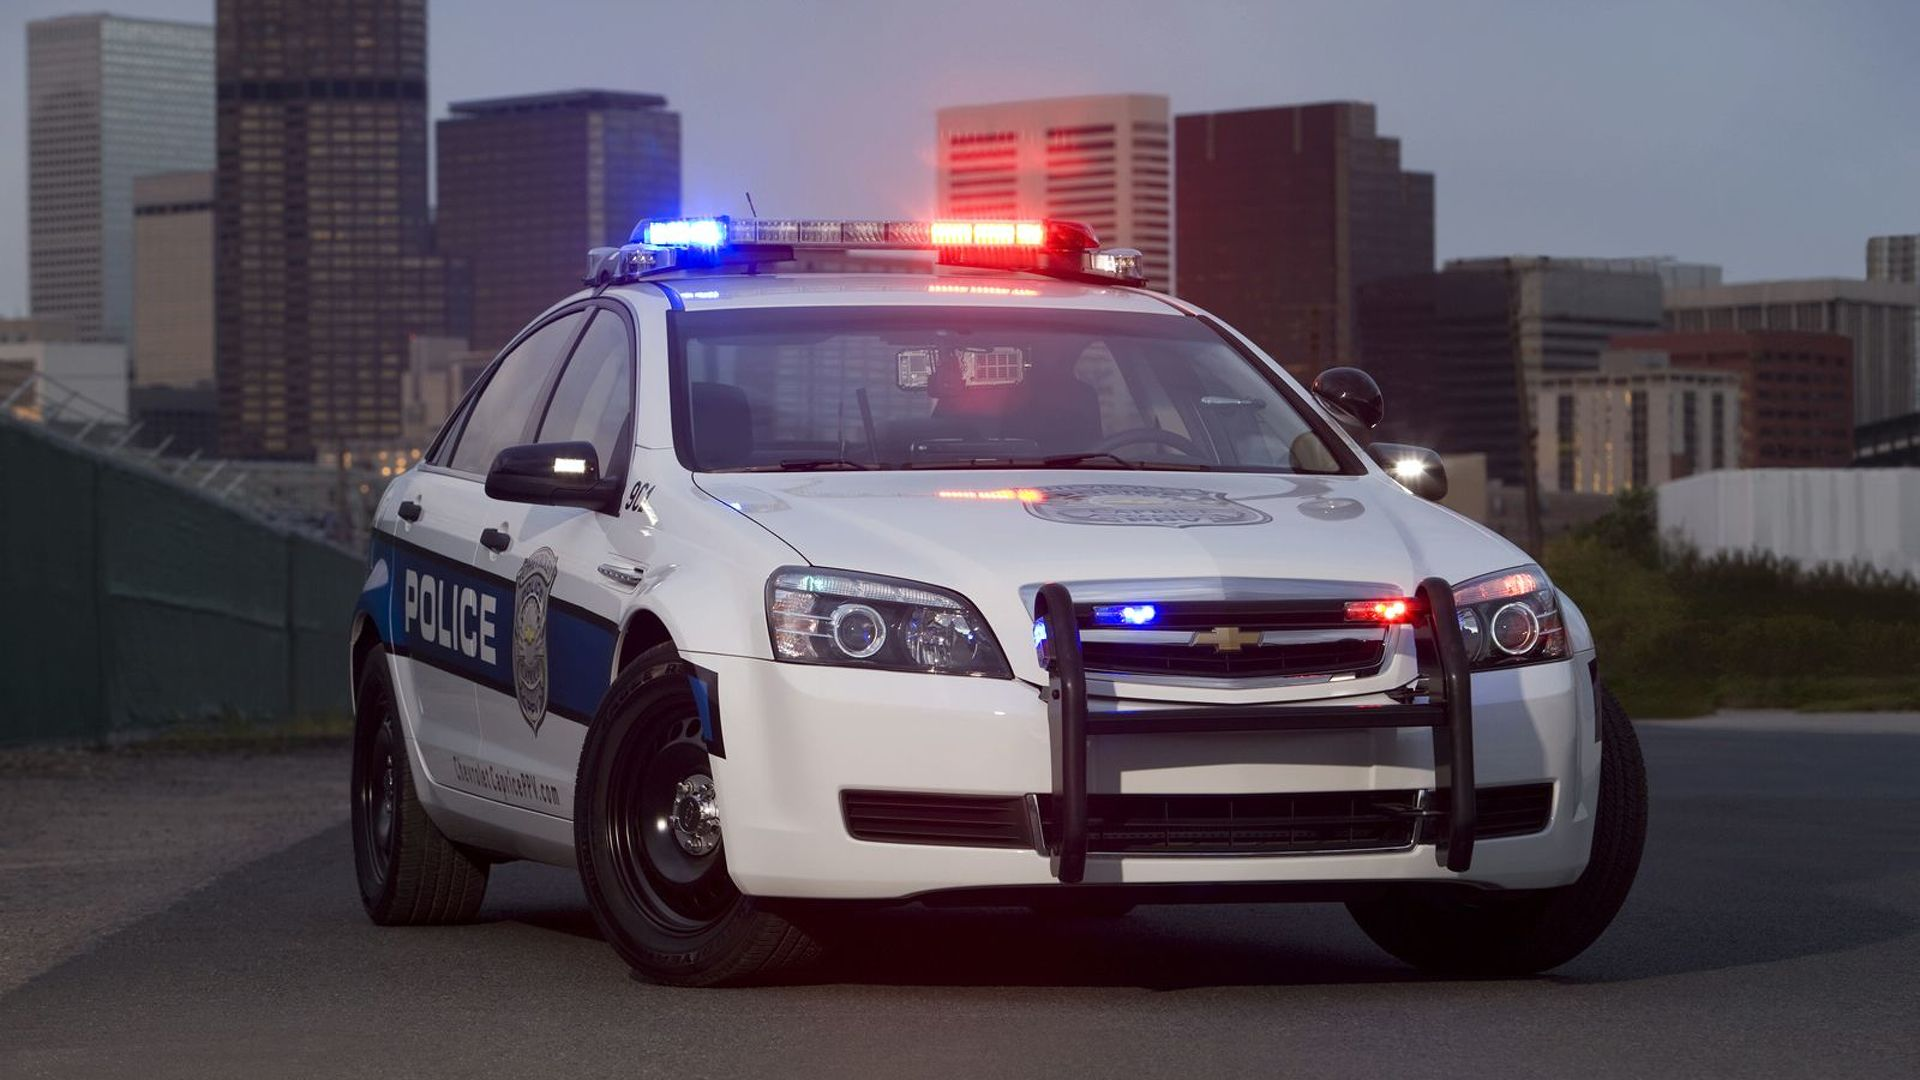 Chevrolet Police Car Returns for More Action